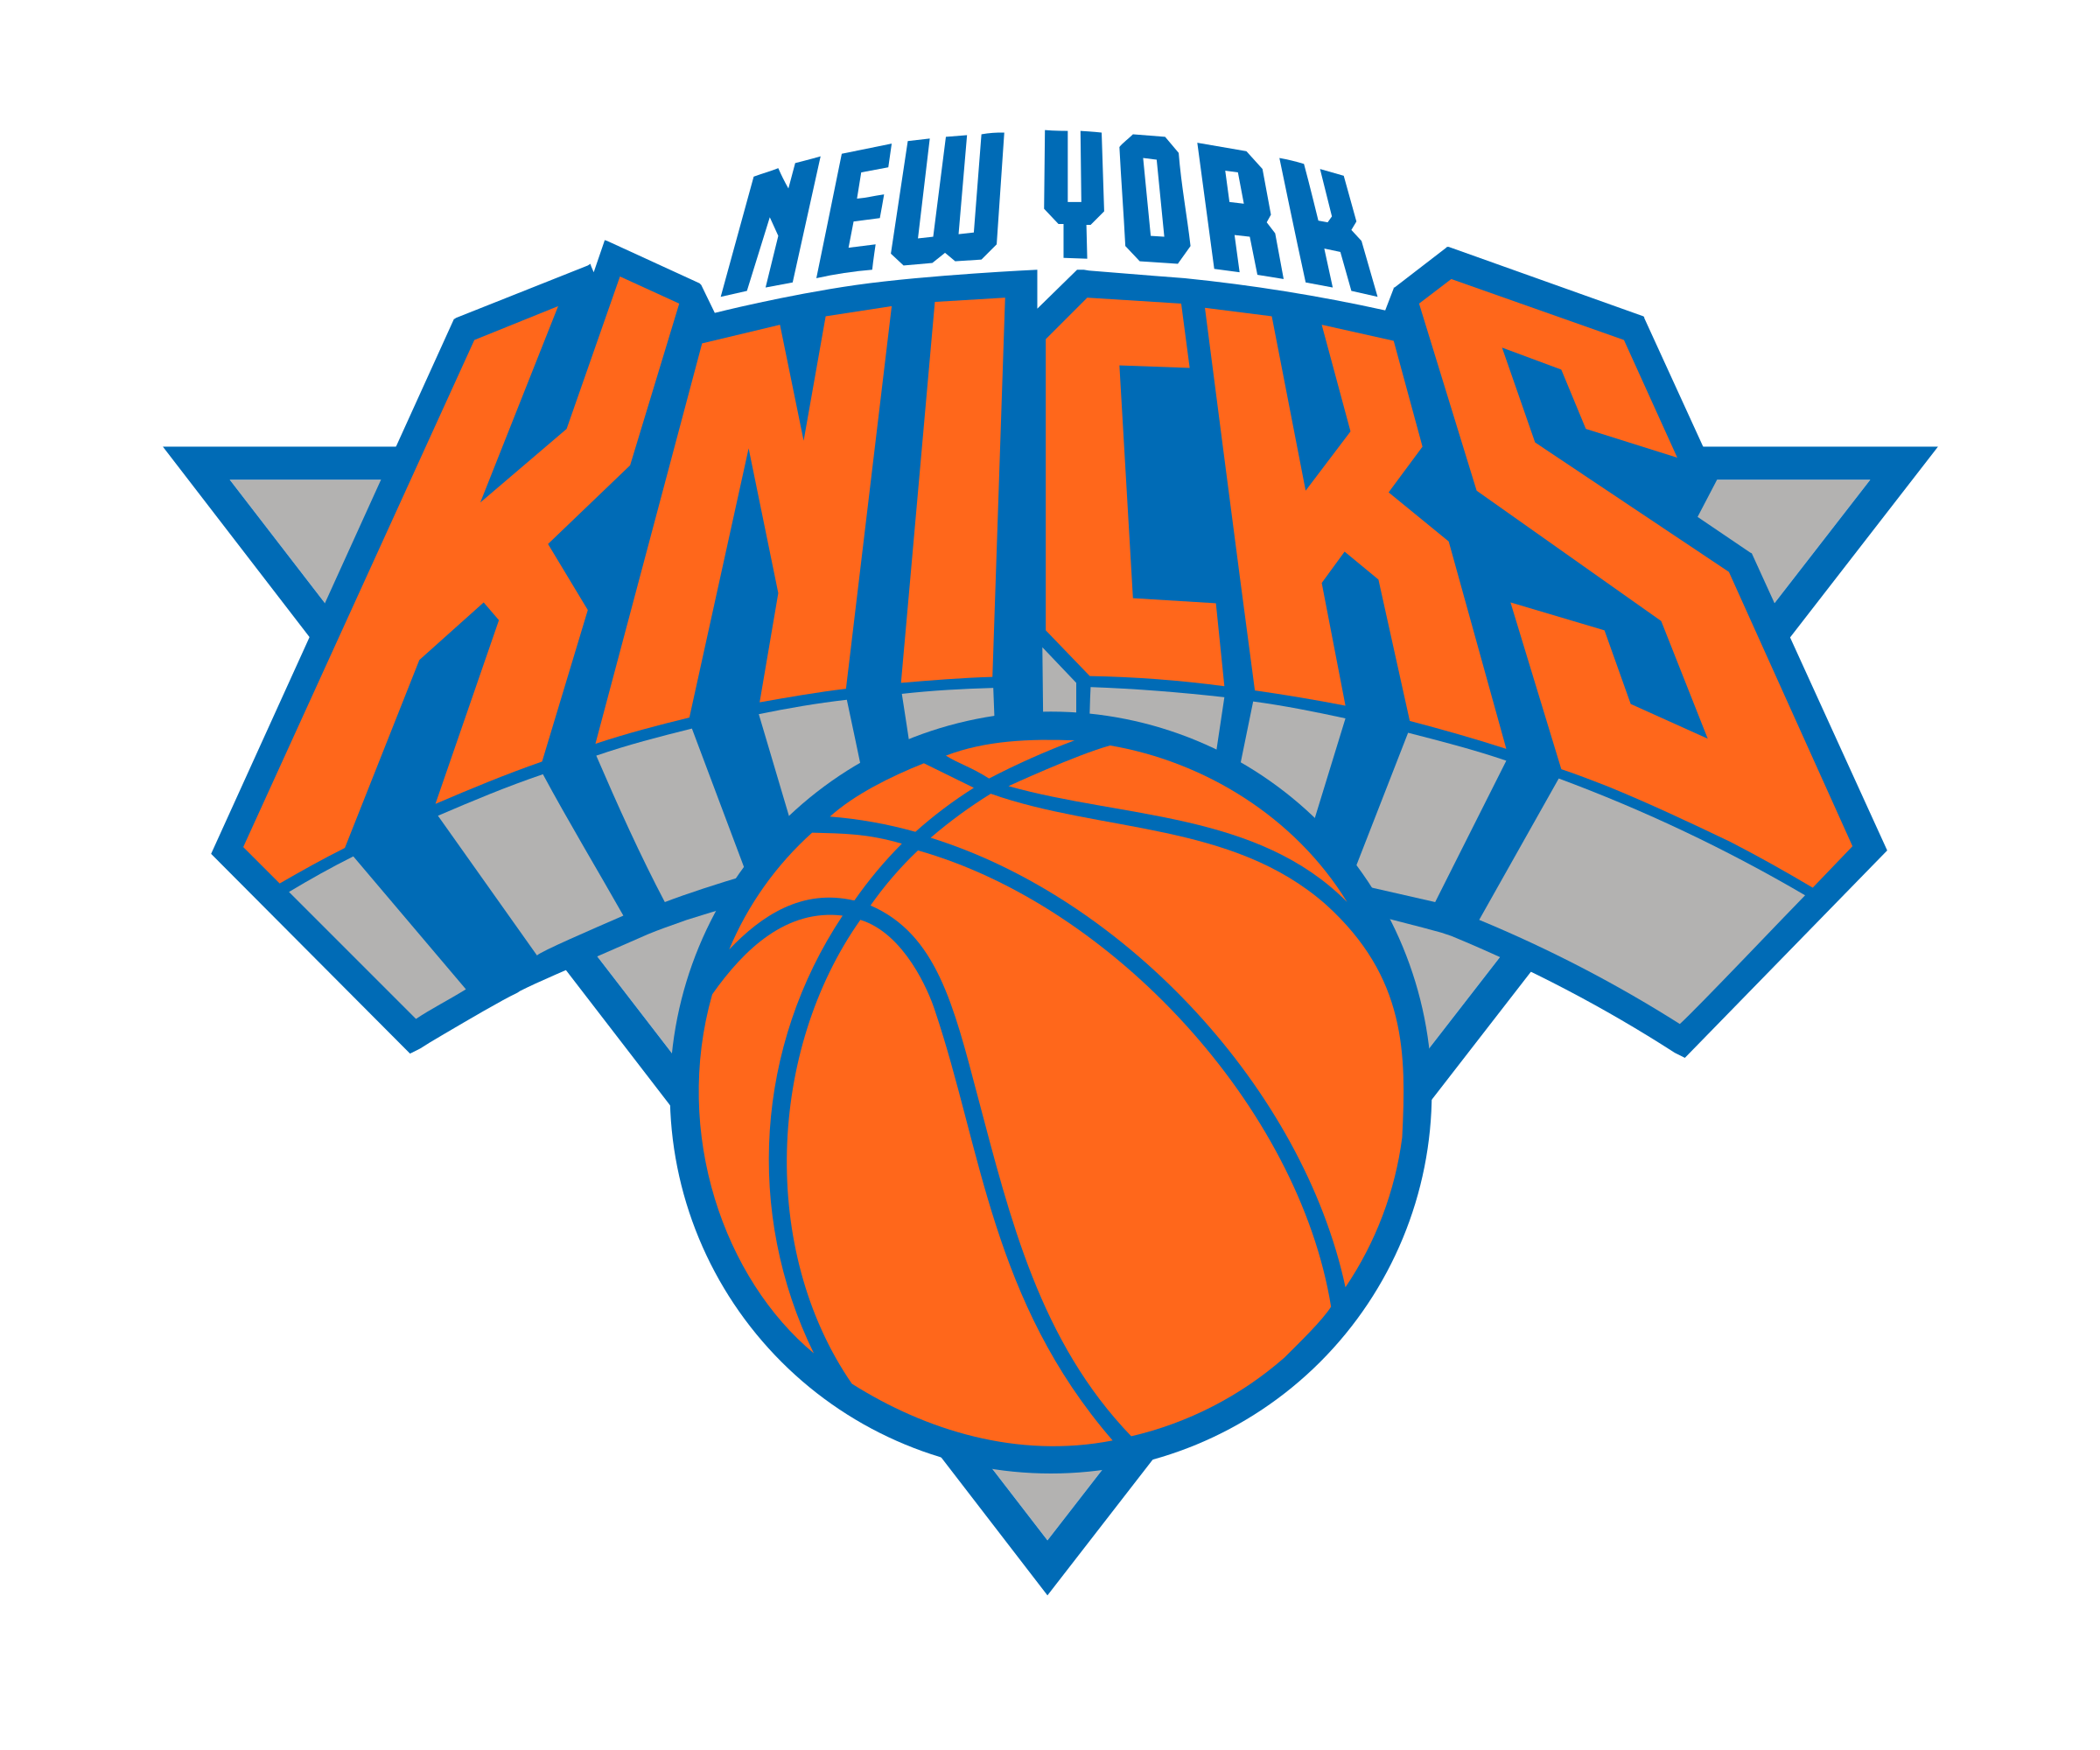 New York Knicks Logo PNG Transparent & SVG Vector